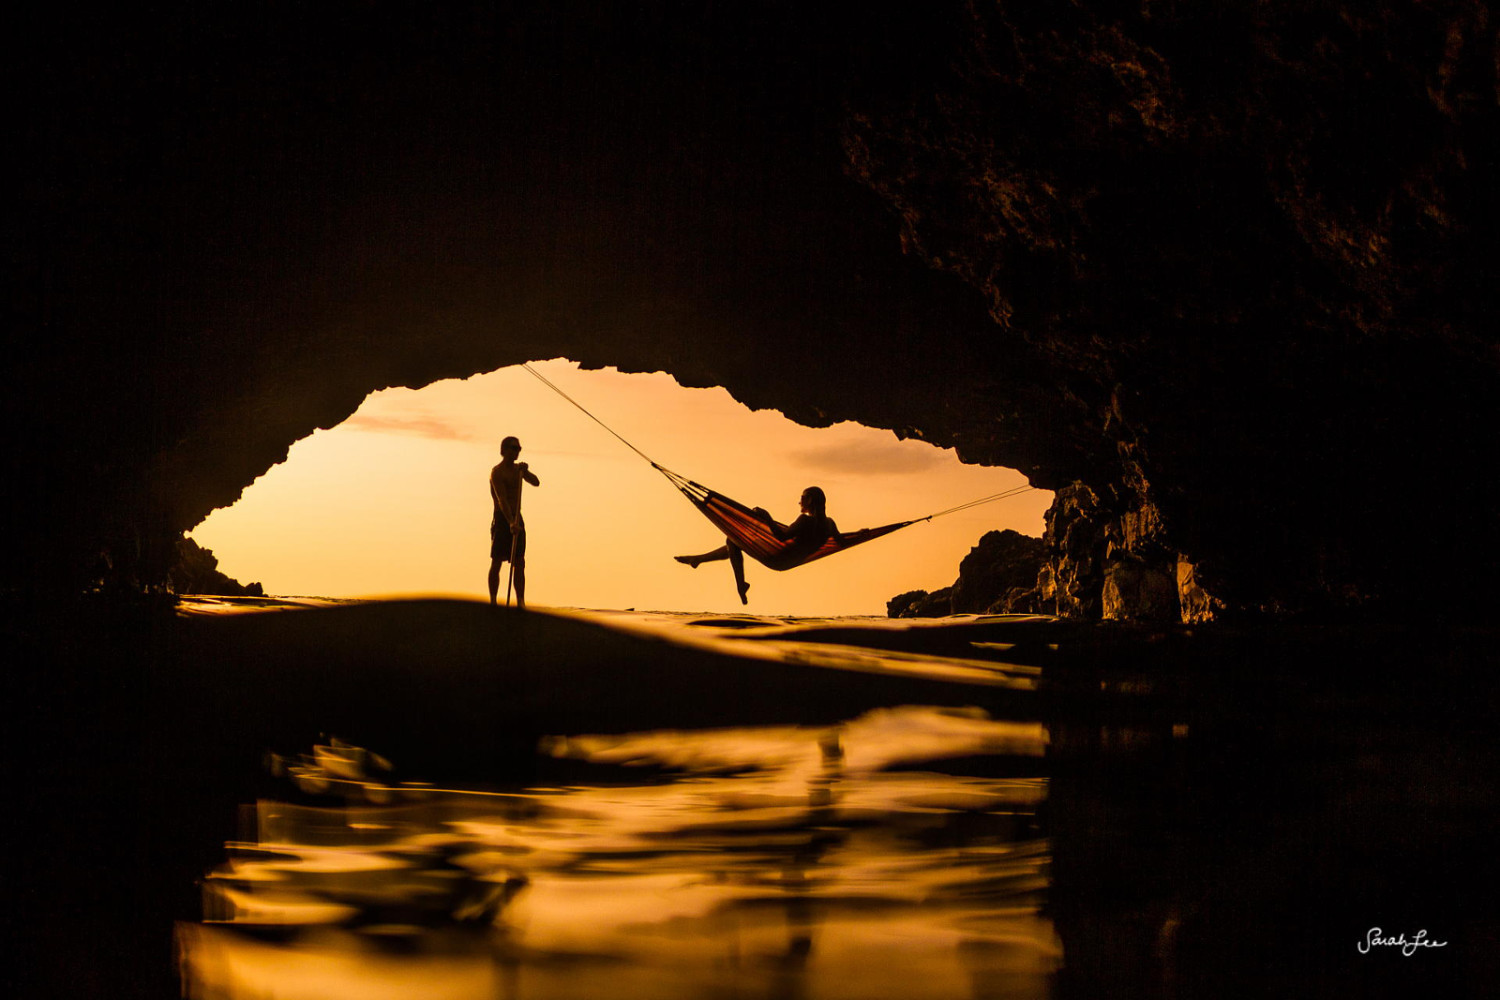 Photograph: 500px Blog » » 5 Most Epic Beaches, Oceans, And Islands To